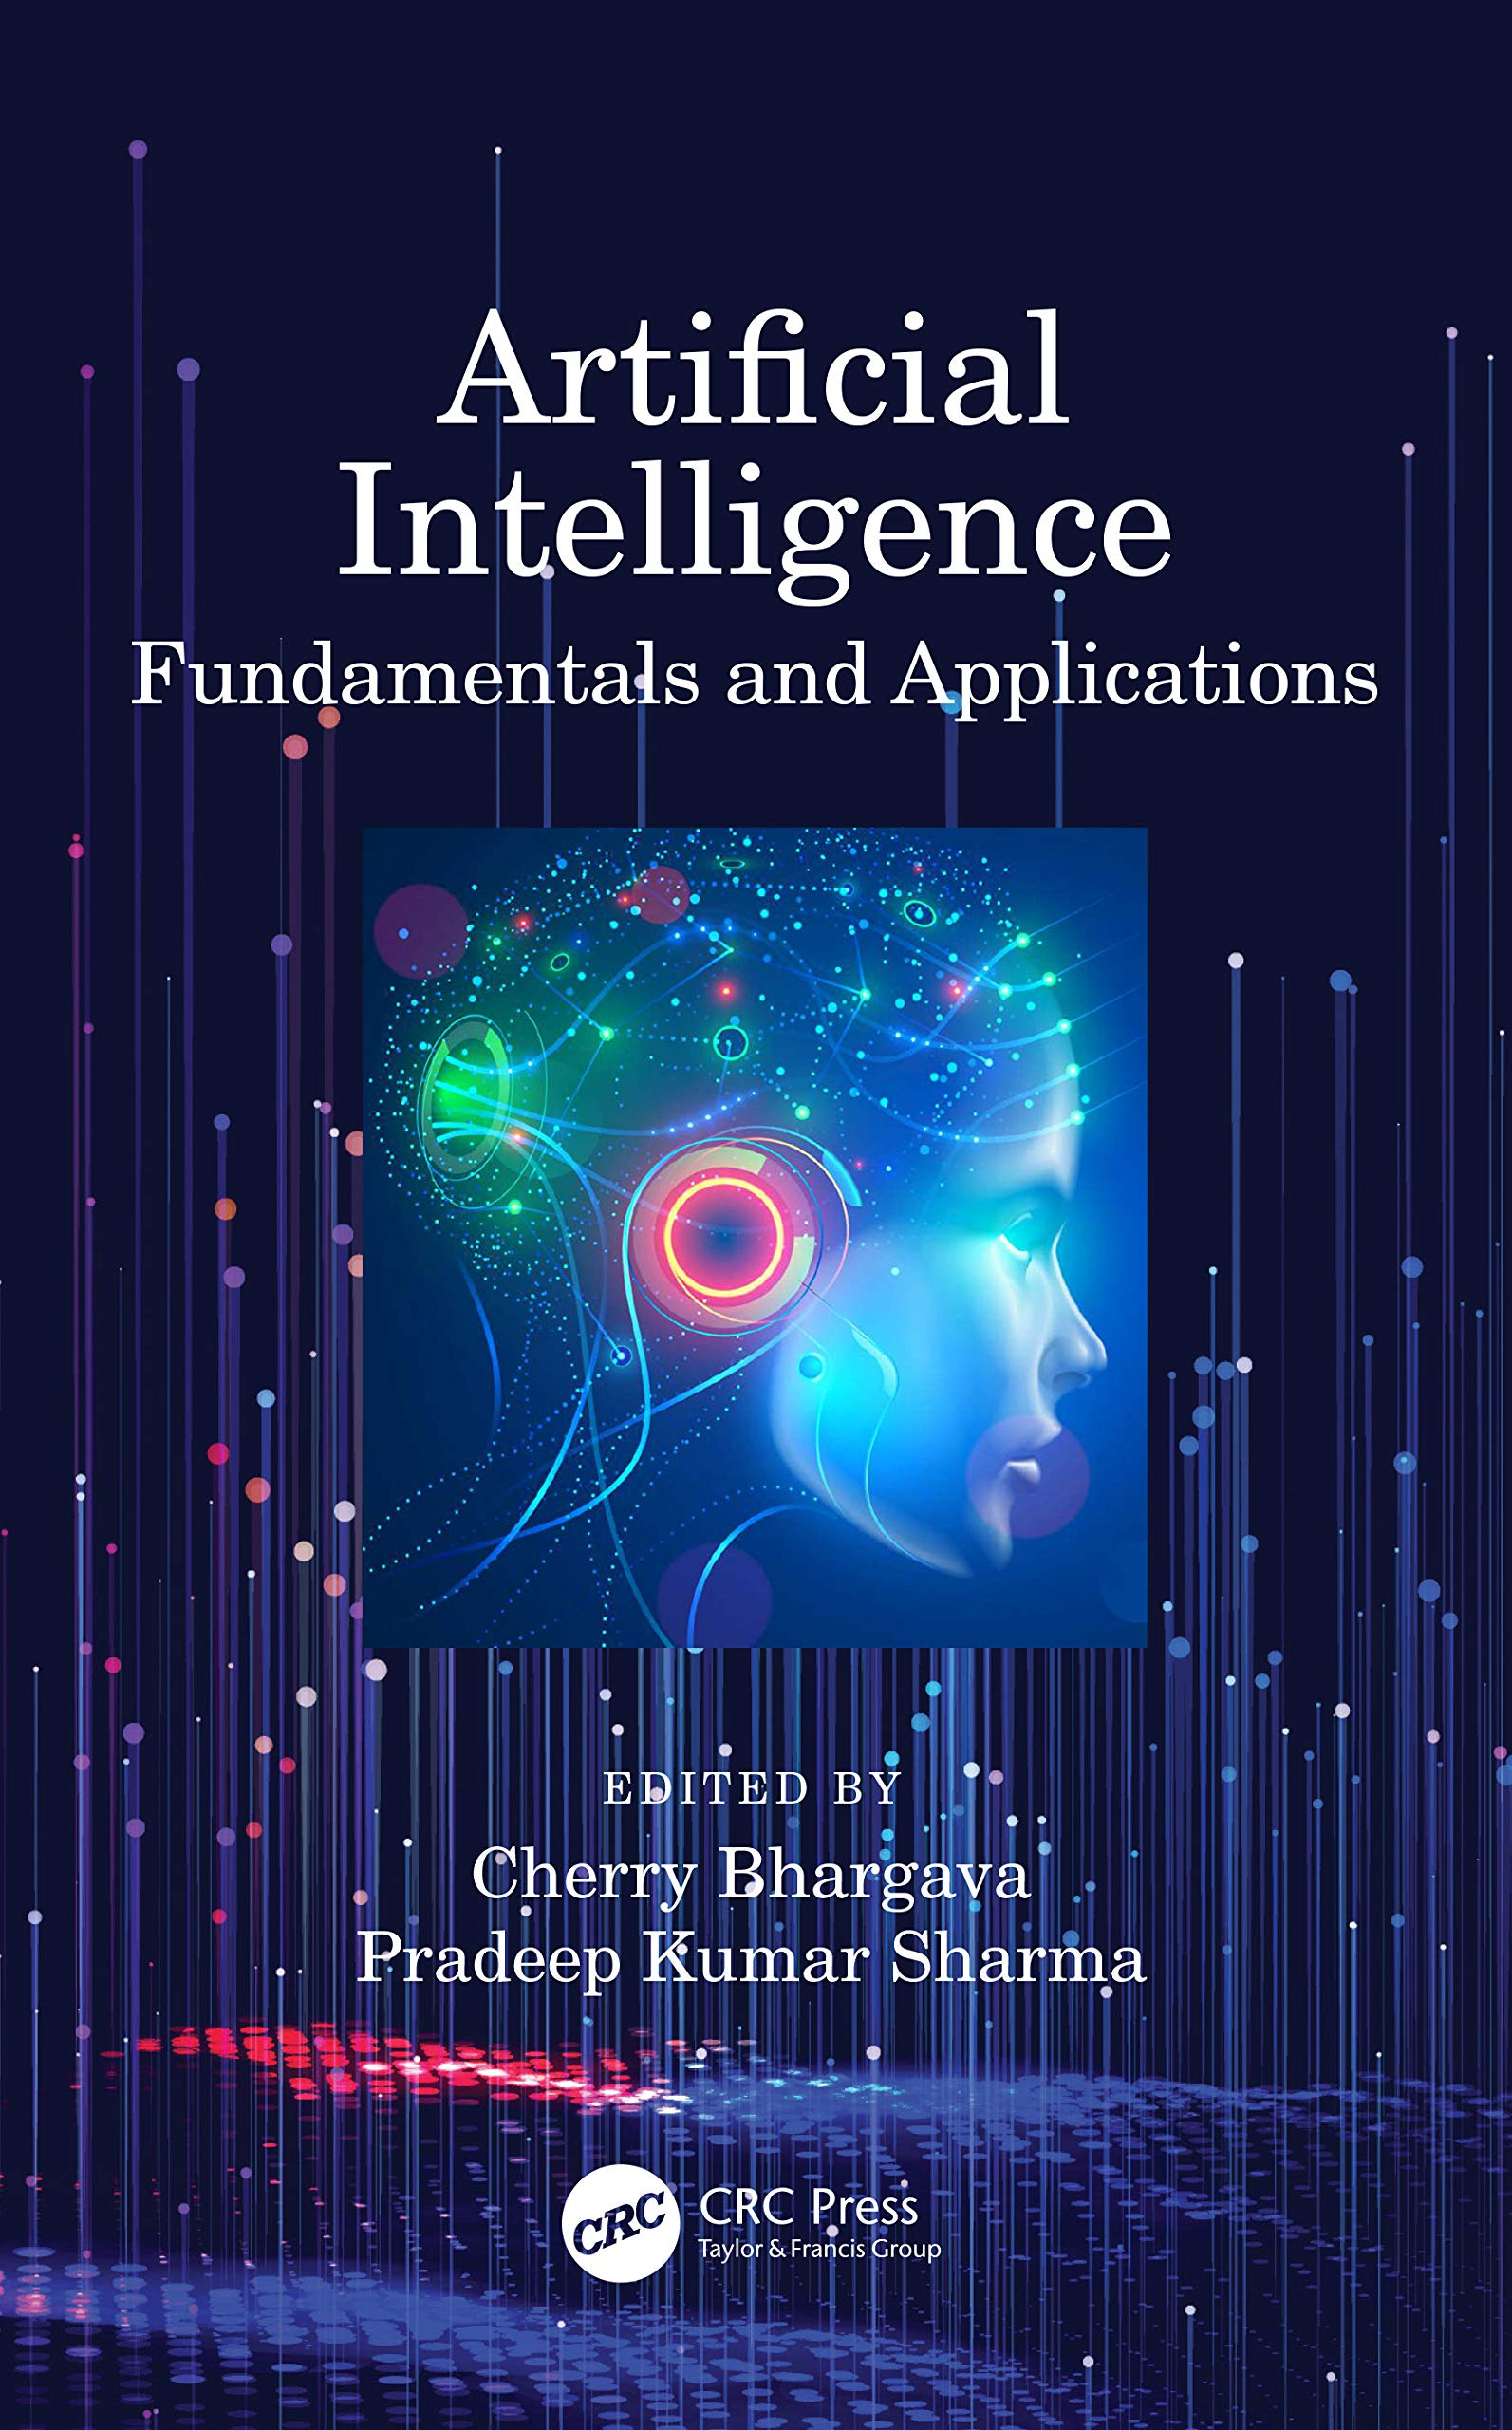 Artificial Intelligence: Fundamentals and Applications